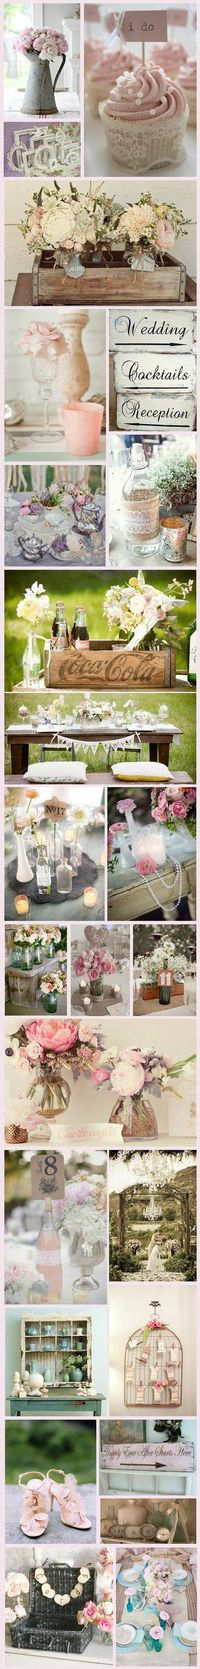 Vintage/Shabby chic wedding ideas Come see me at Lake Norman Antique Mall in Mooresville and The Depot in Concord. Dealer 9M.